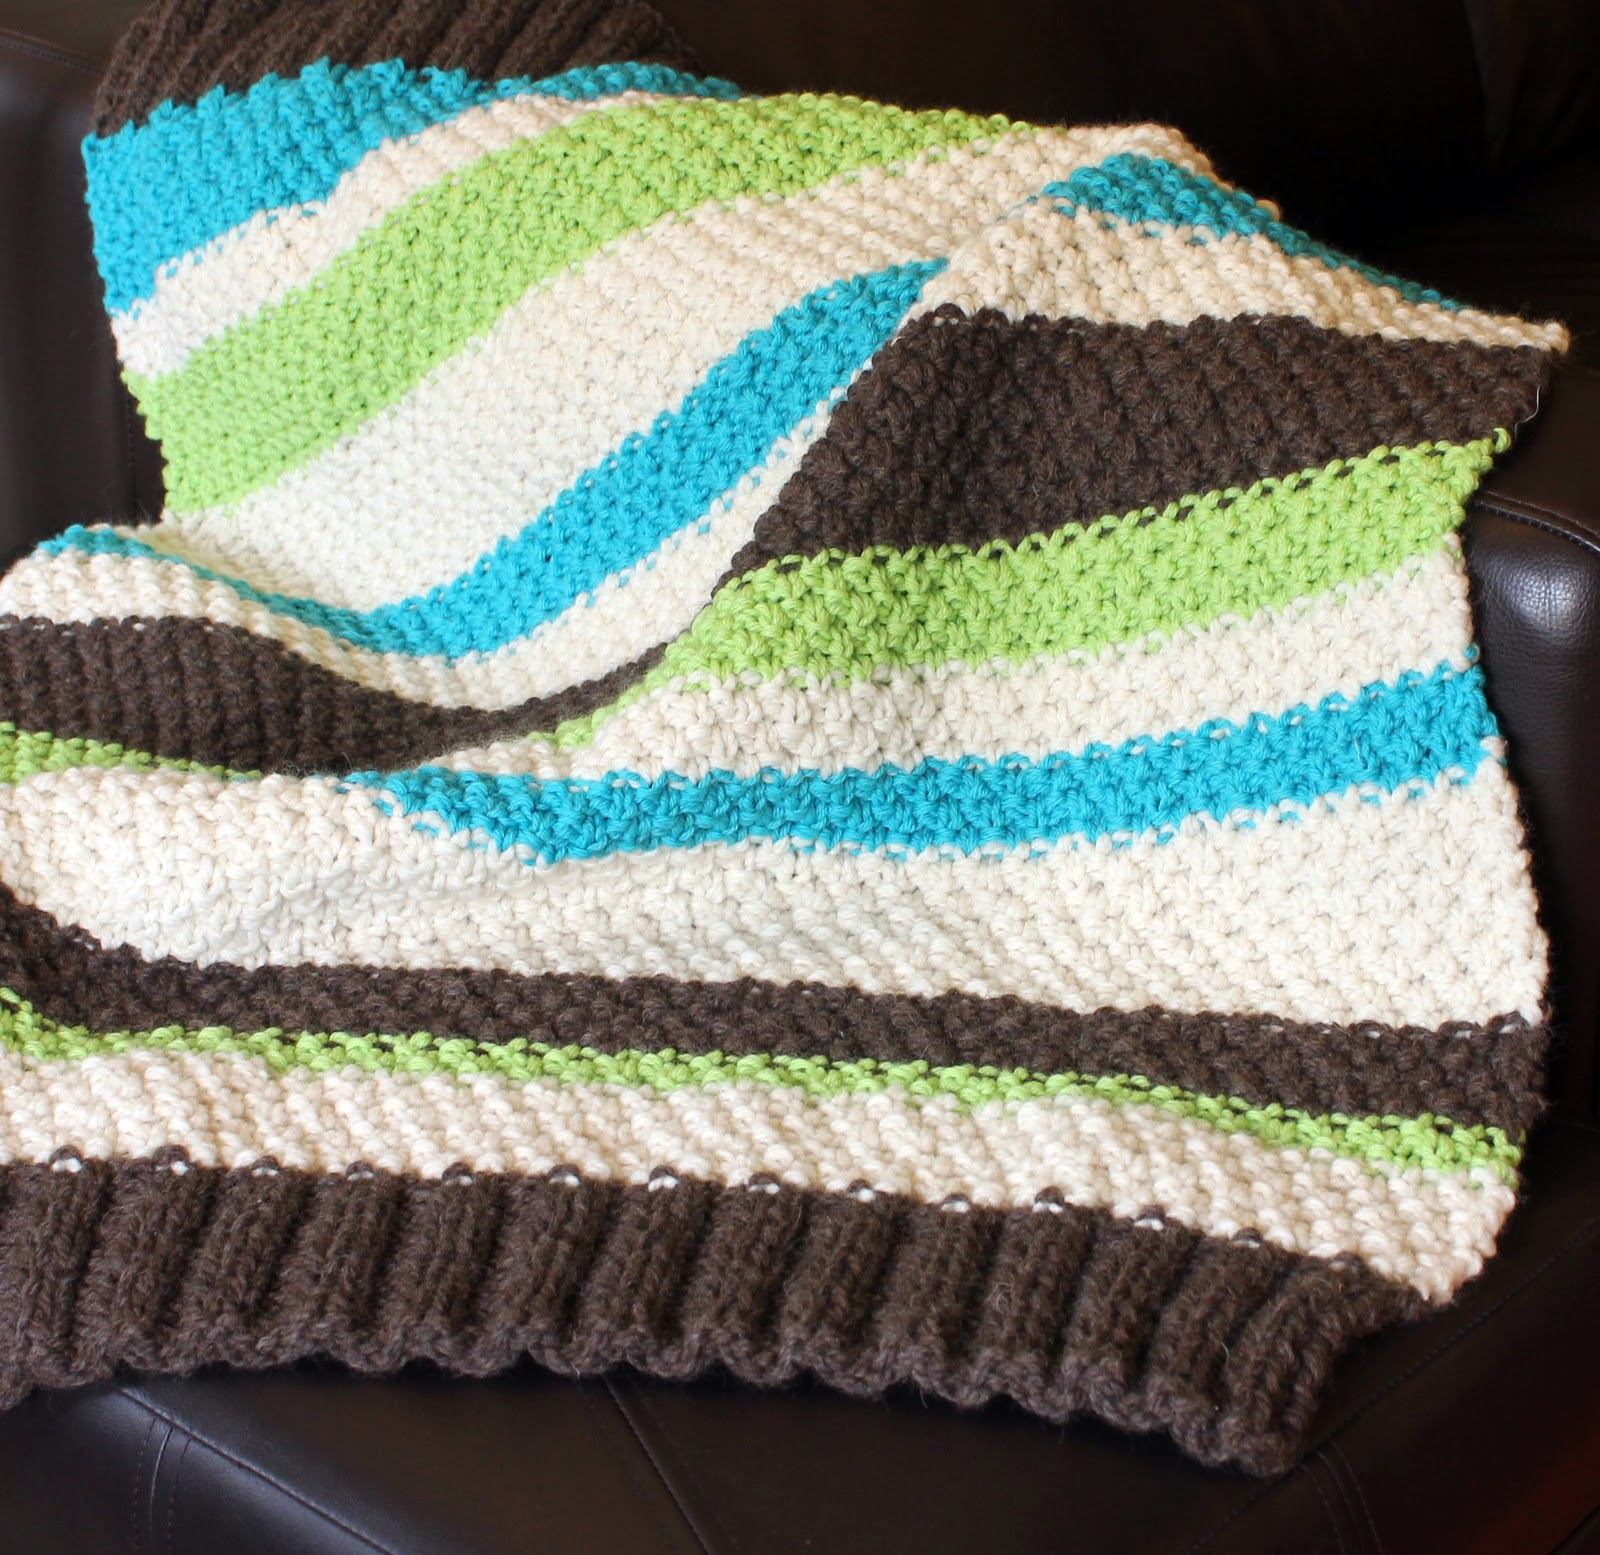 Quick Easy Baby Blanket Knitting Pattern : skadoot: original designs: Learn to Knit: Free & Easy Baby Blanket Patter...